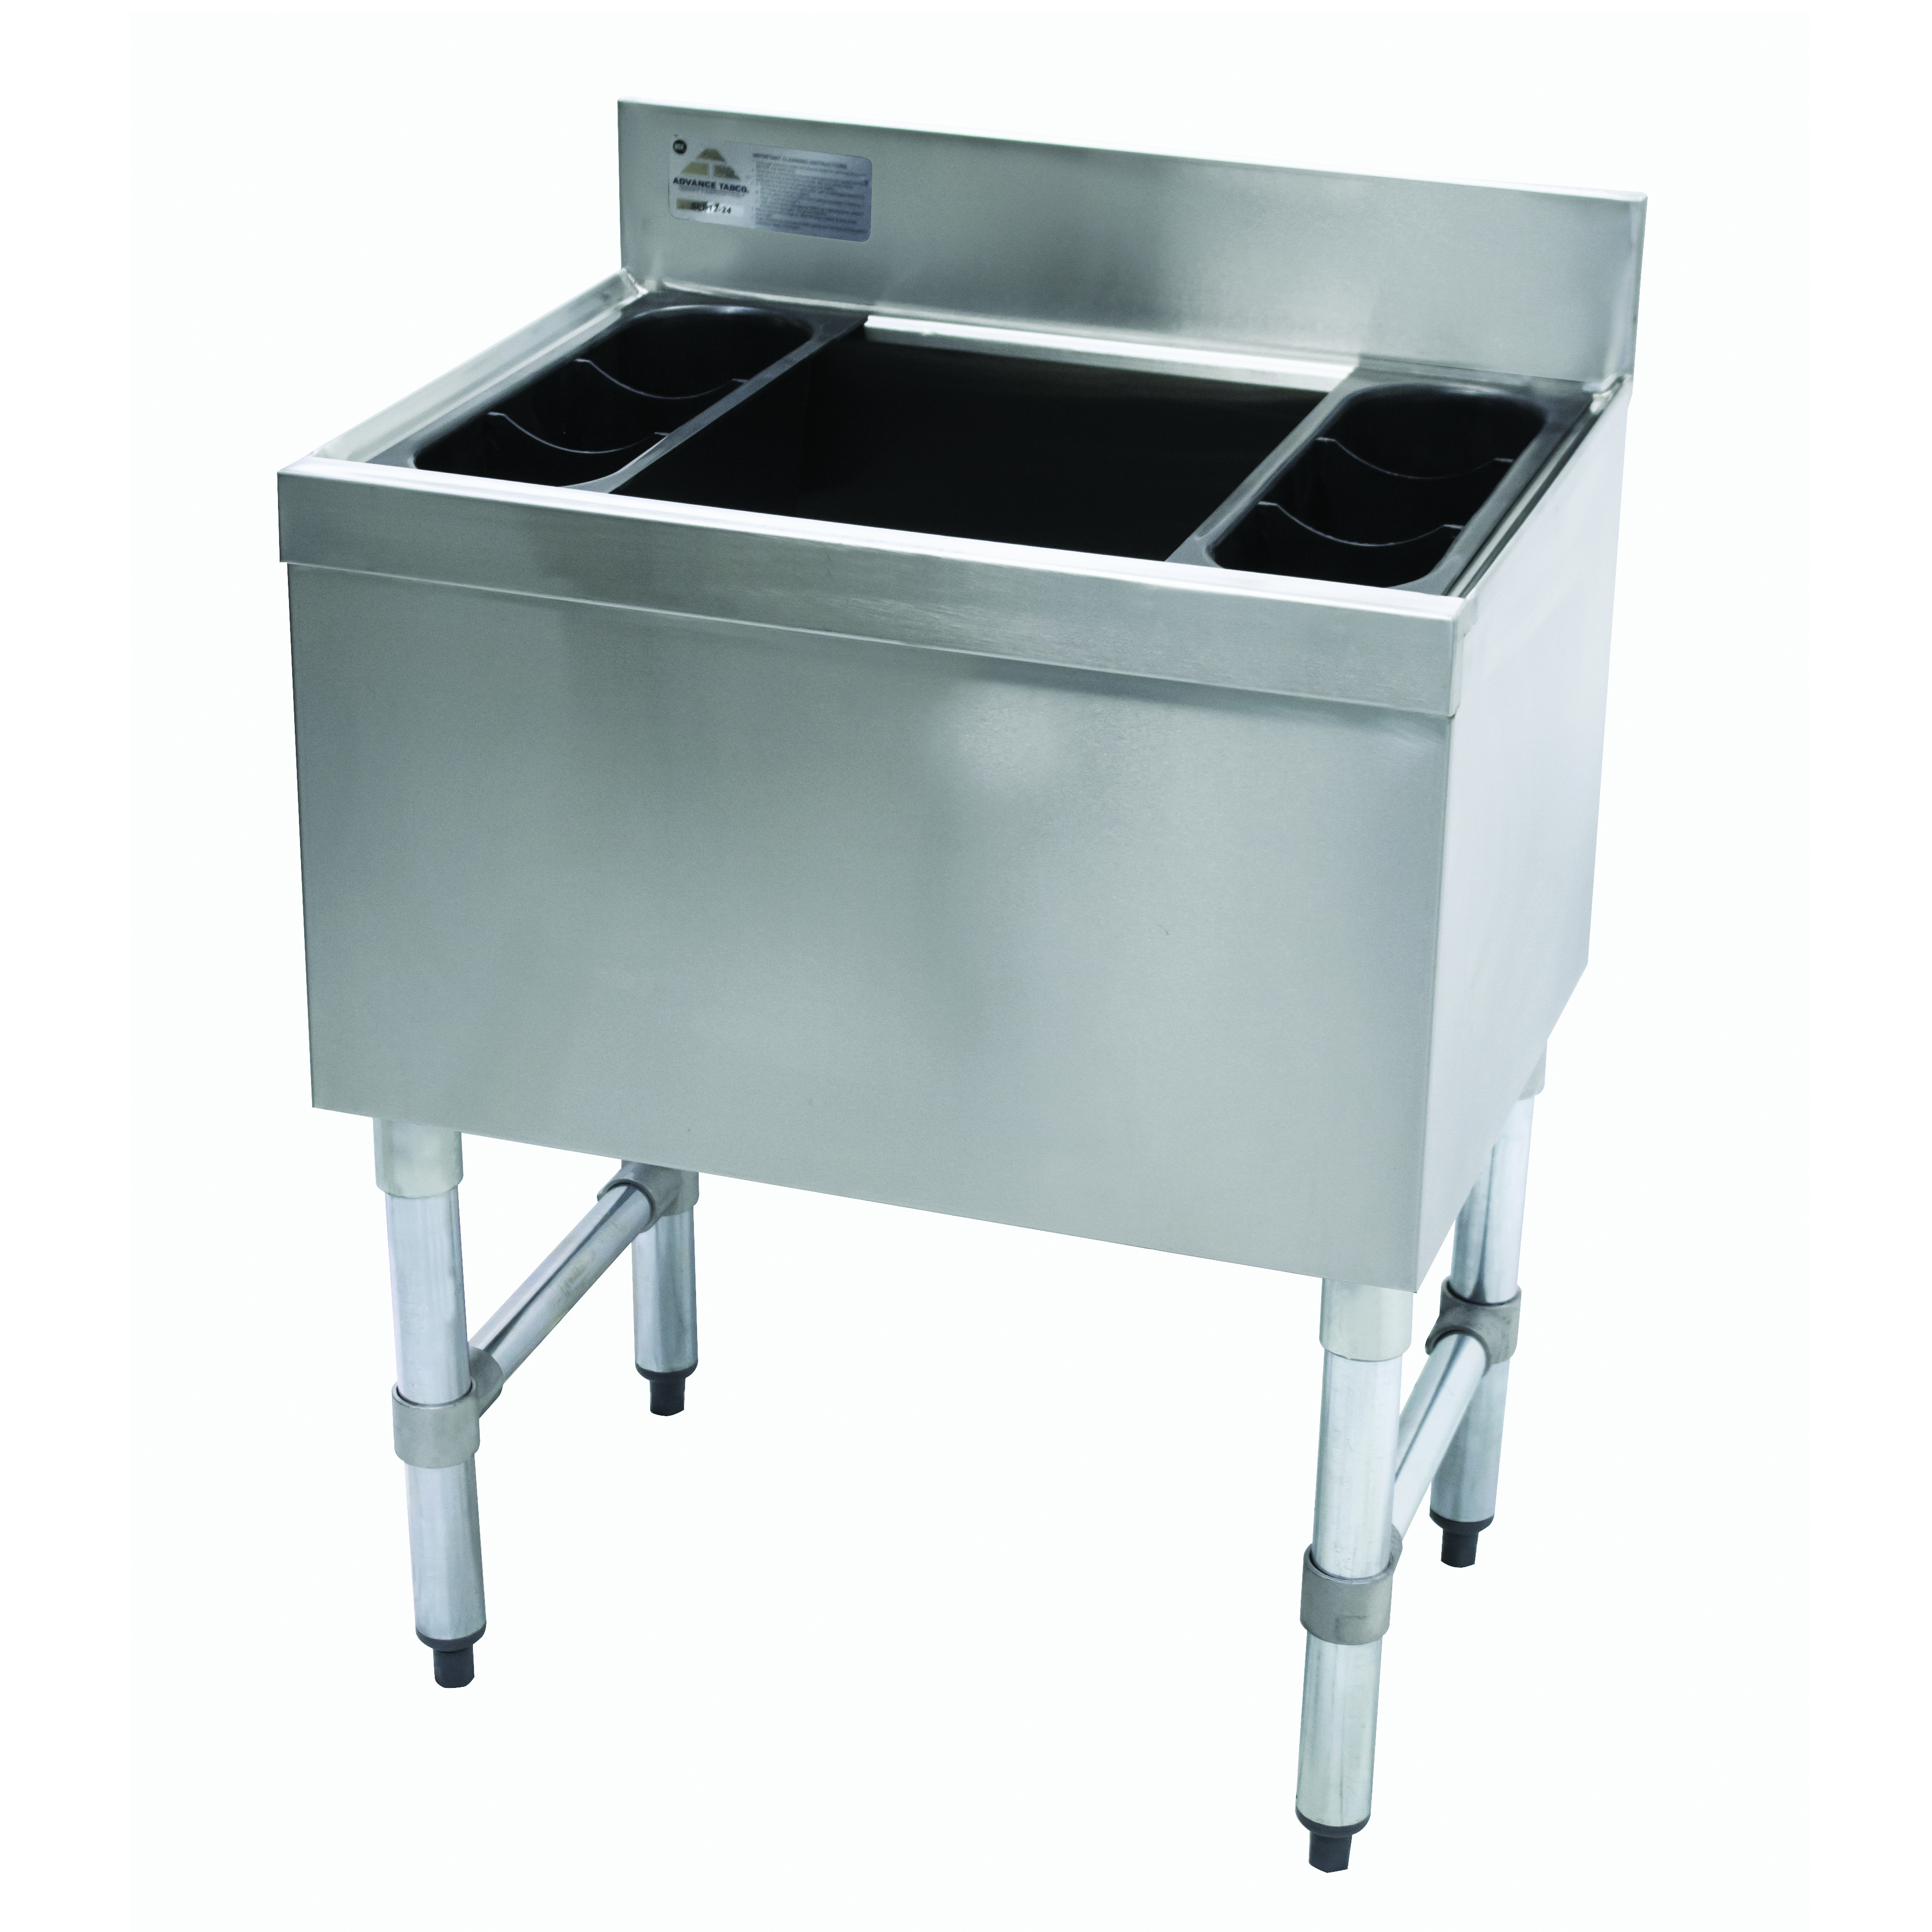 Advance Tabco SLI-16-36-10 underbar ice bin/cocktail unit